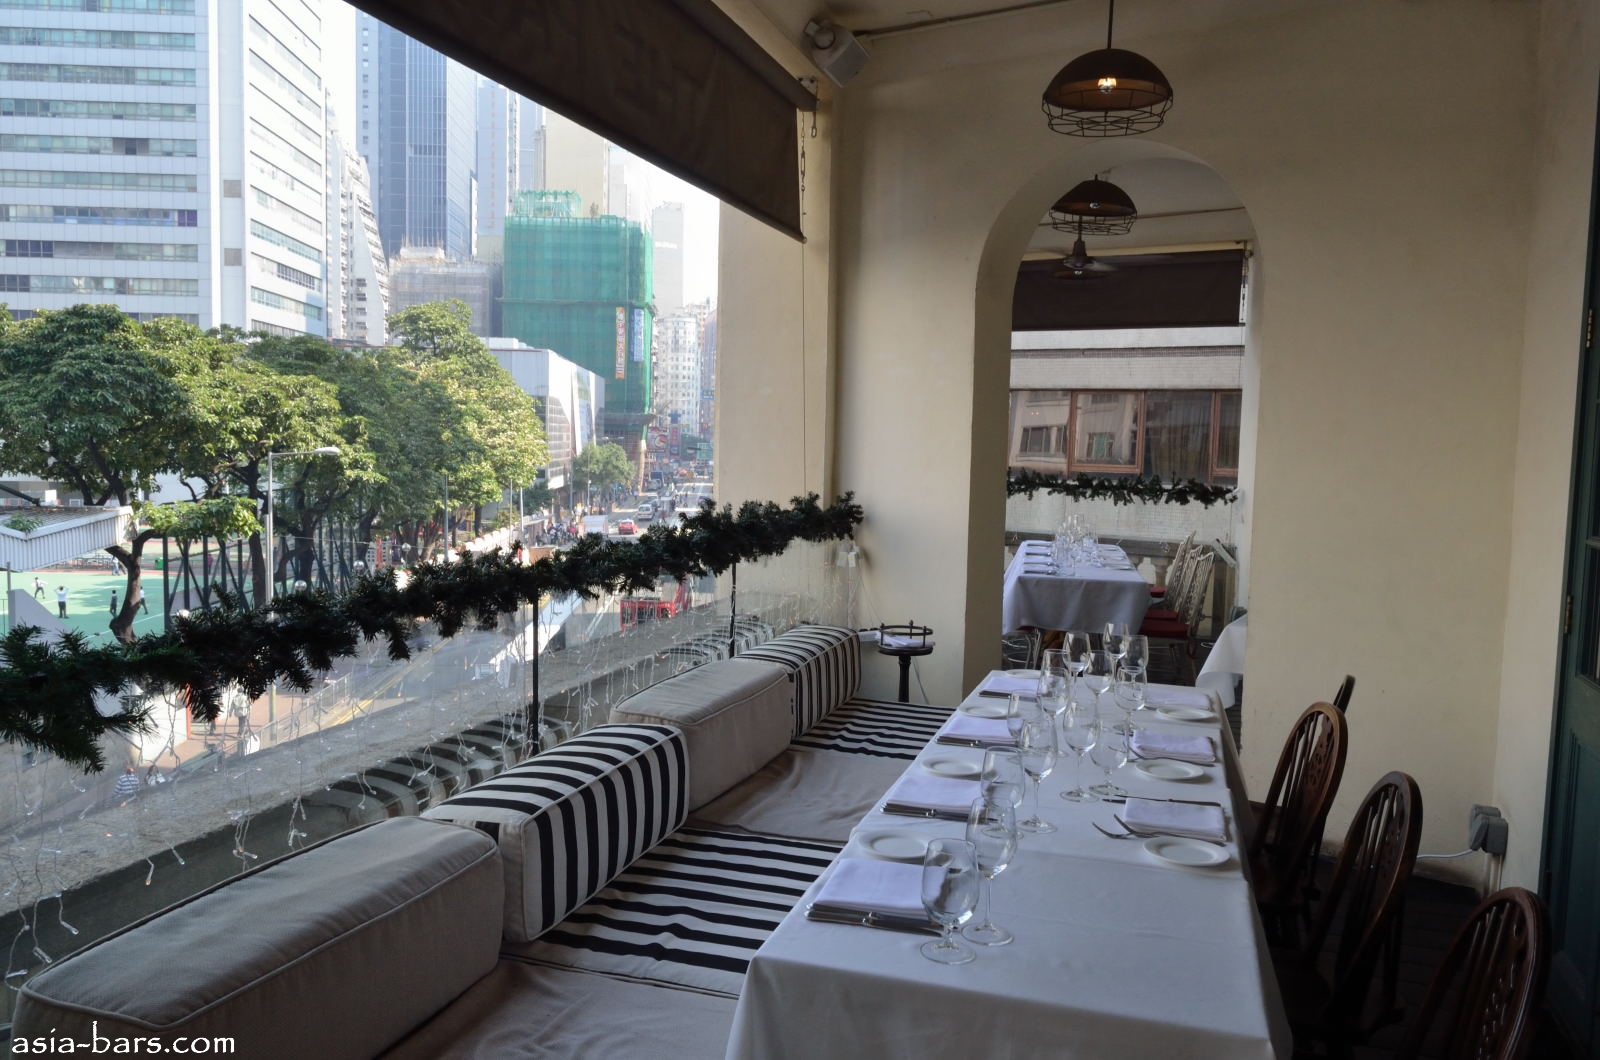 The pawn consummate modern british dining in restored for Restaurants with balcony